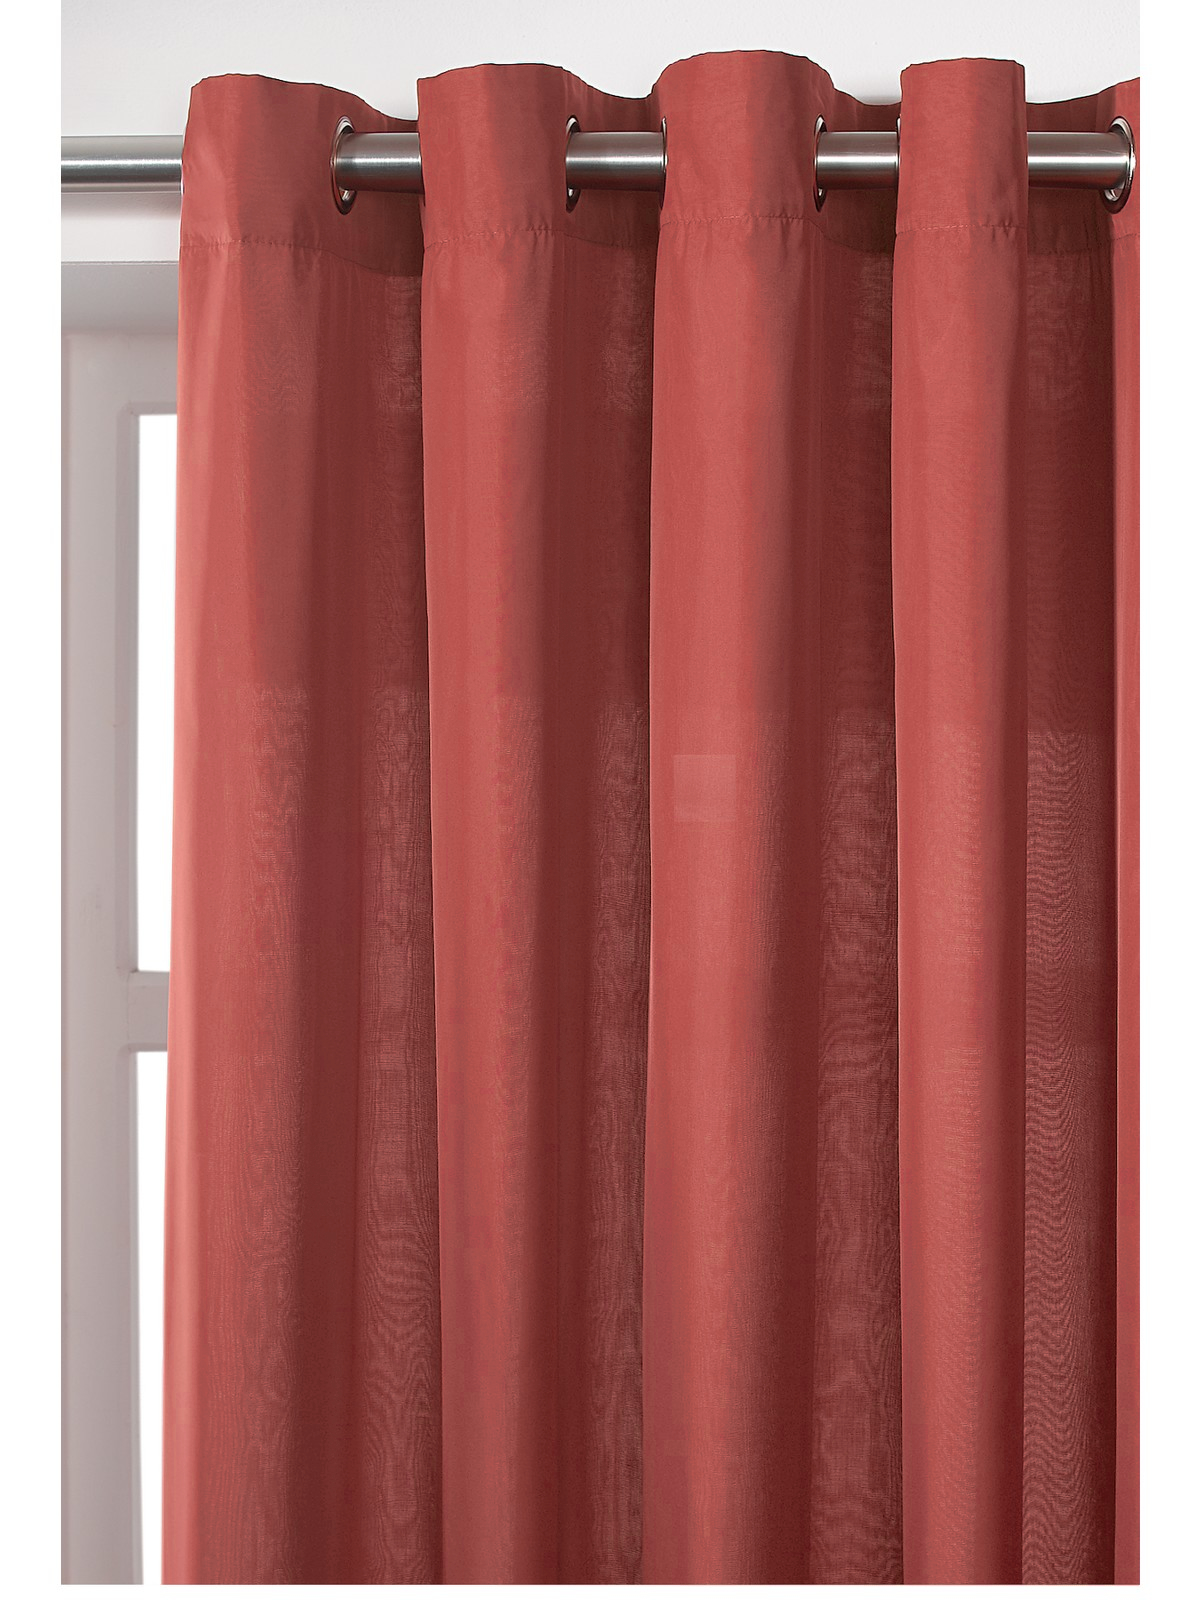 DISCOUNTED PLAIN DYE VOILE LINED CURTAIN - RING TOP / EYELET - CHOICE ...